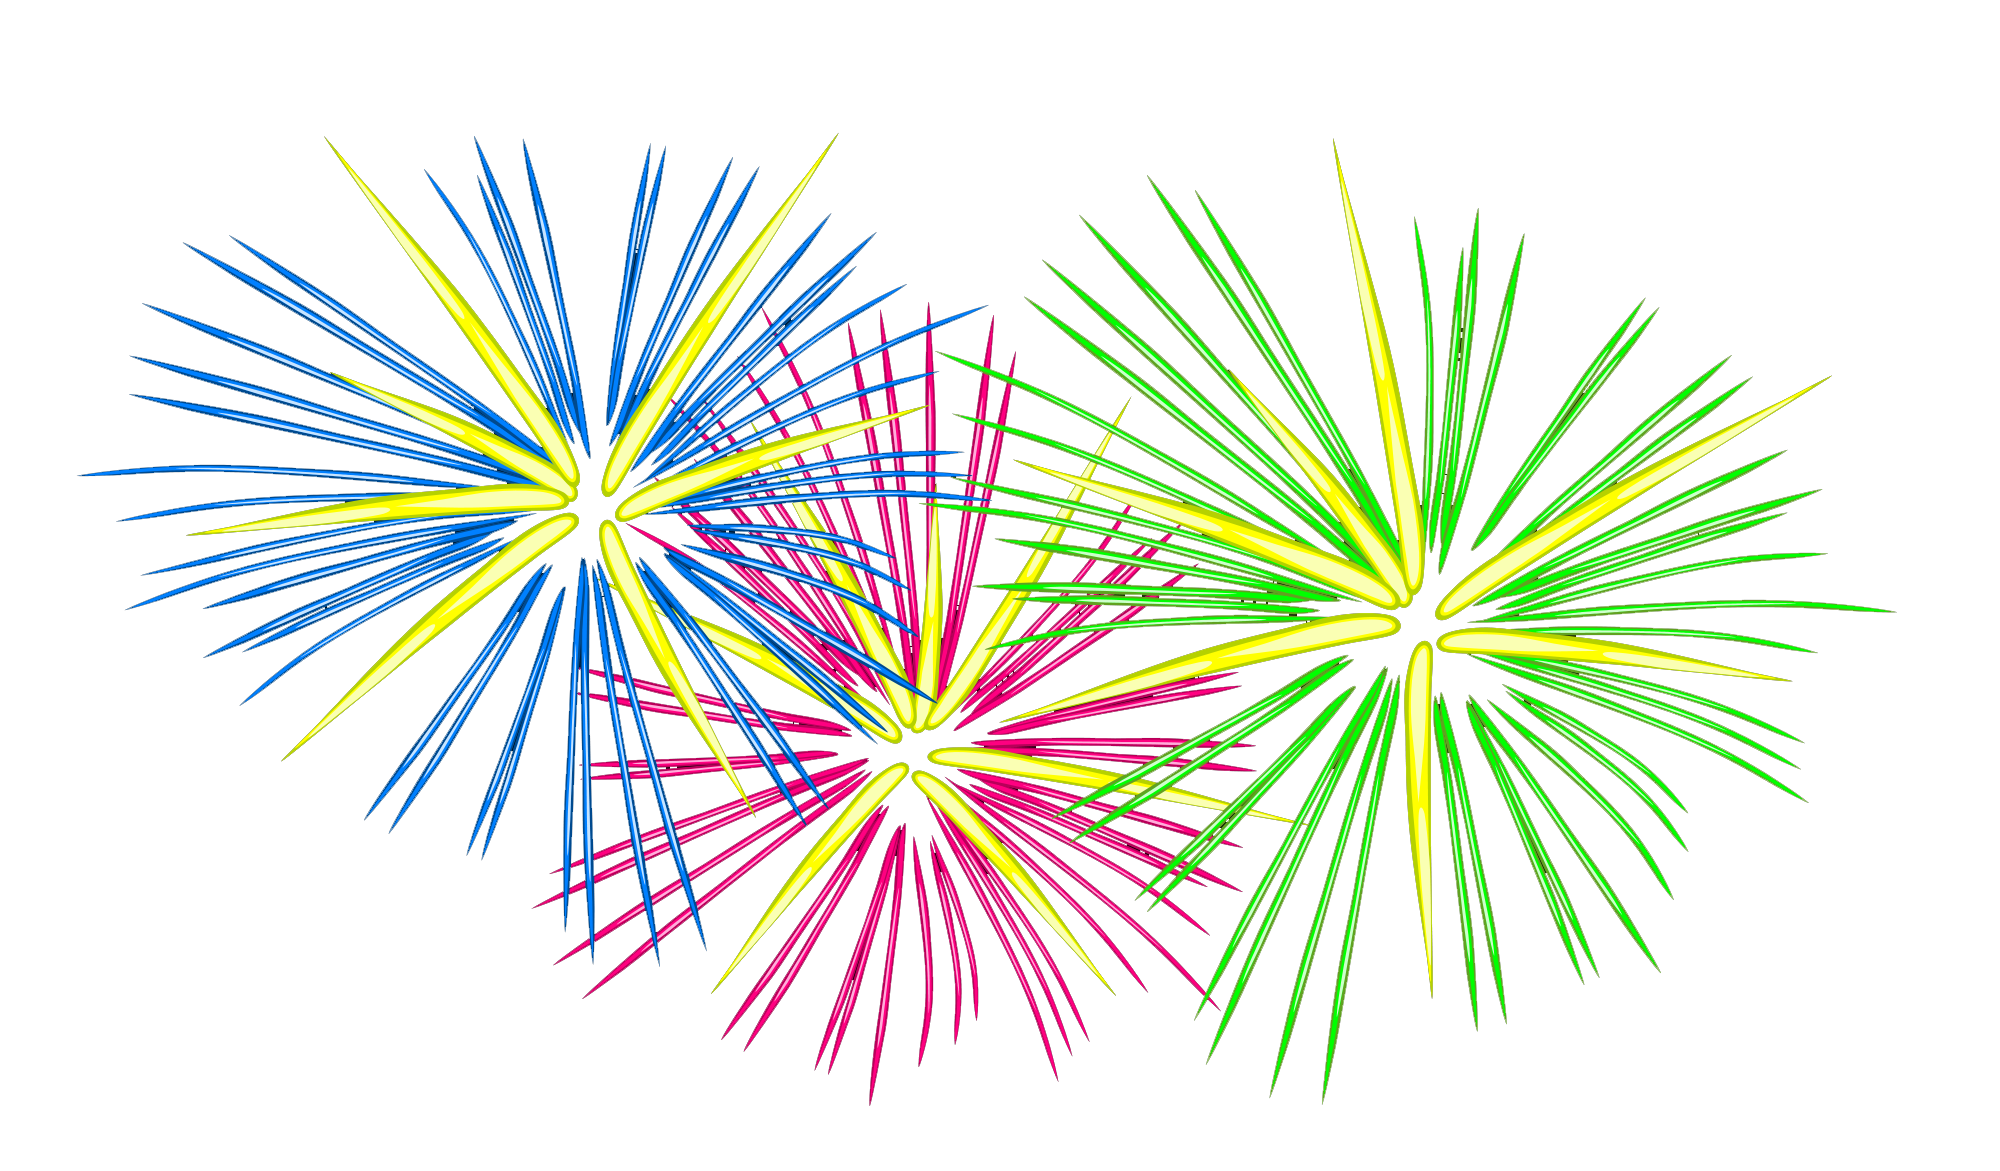 Description Fireworks 2 Png - Fireworks Pictures Free Clipart